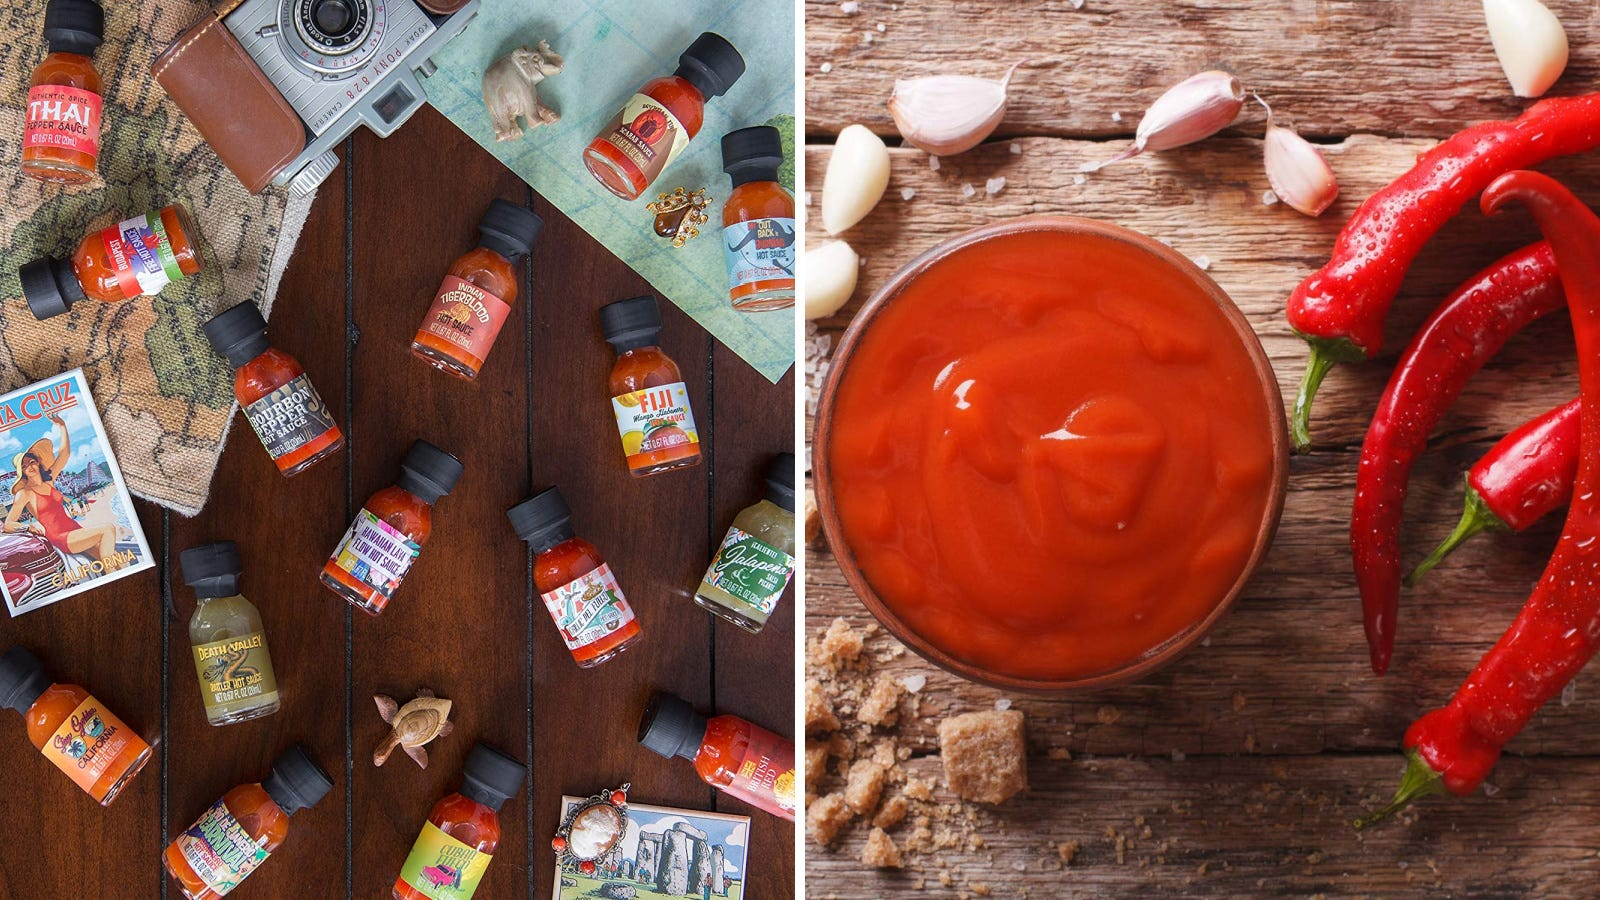 Two images featuring Thoughtfully gifts hot sauce sampler from around the world.